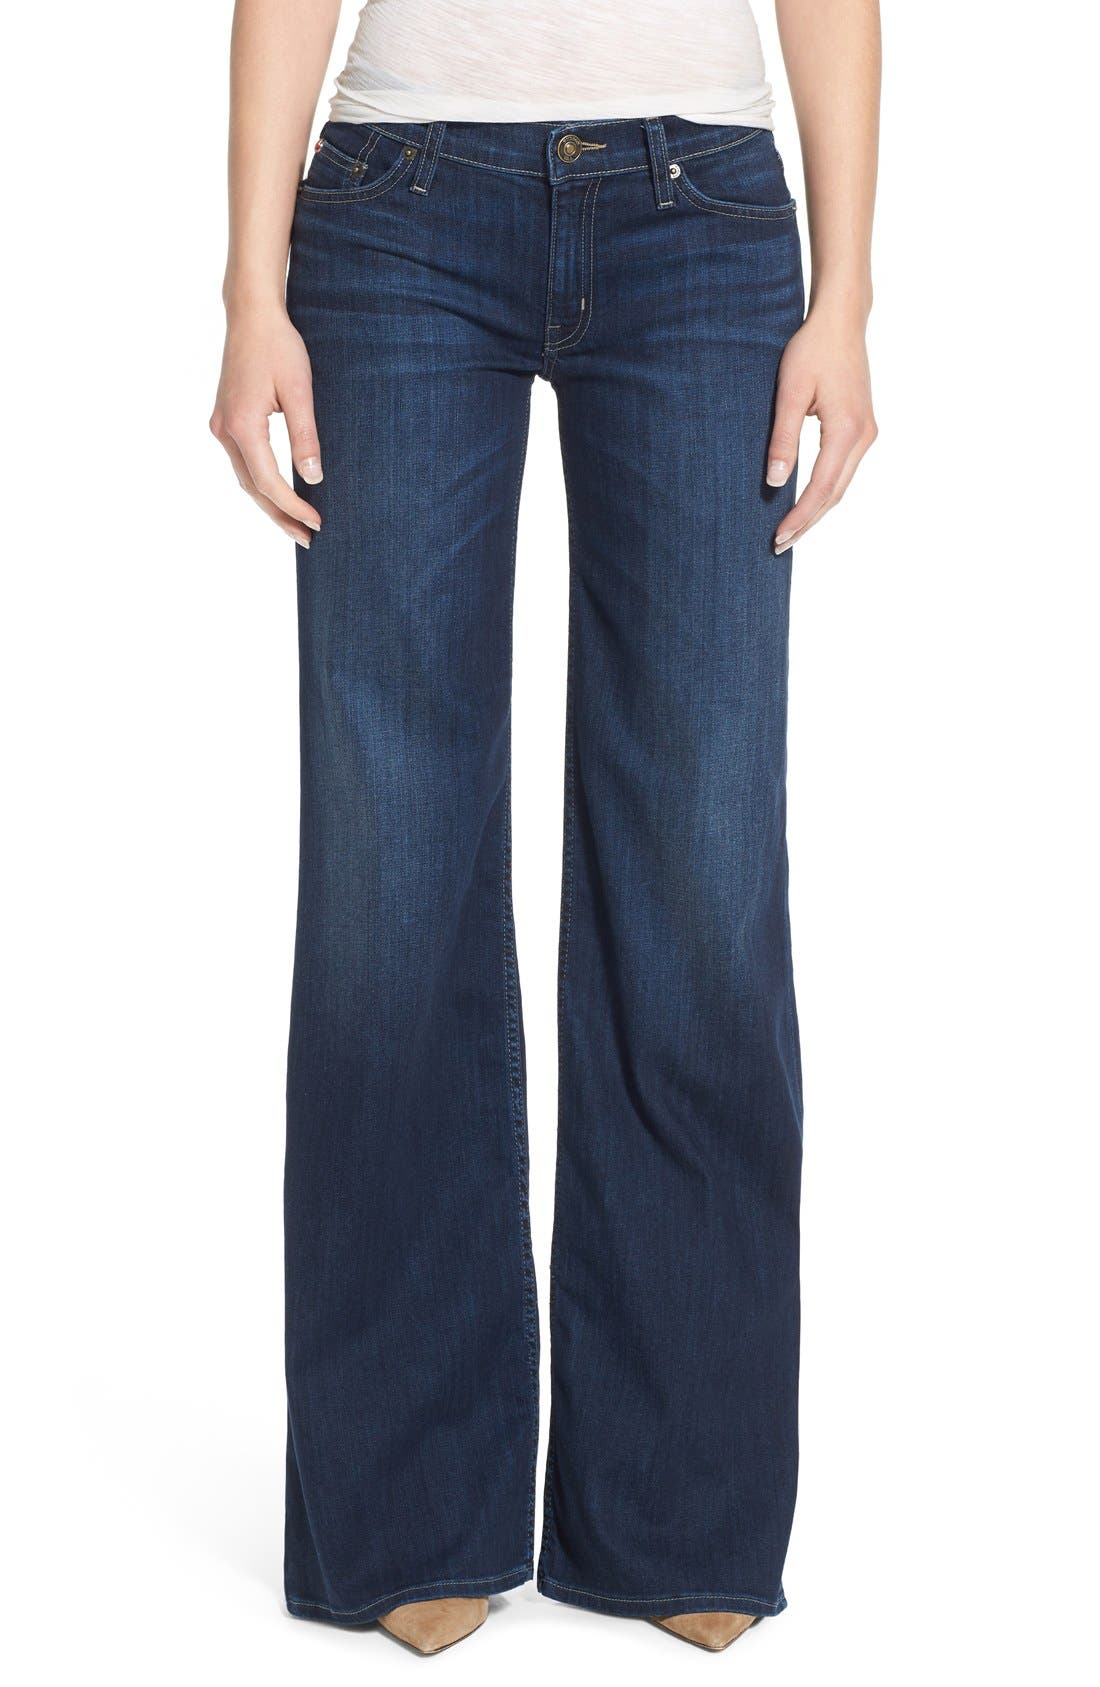 Main Image - Hudson Jeans Piper Wide Leg Jeans (Thruway)